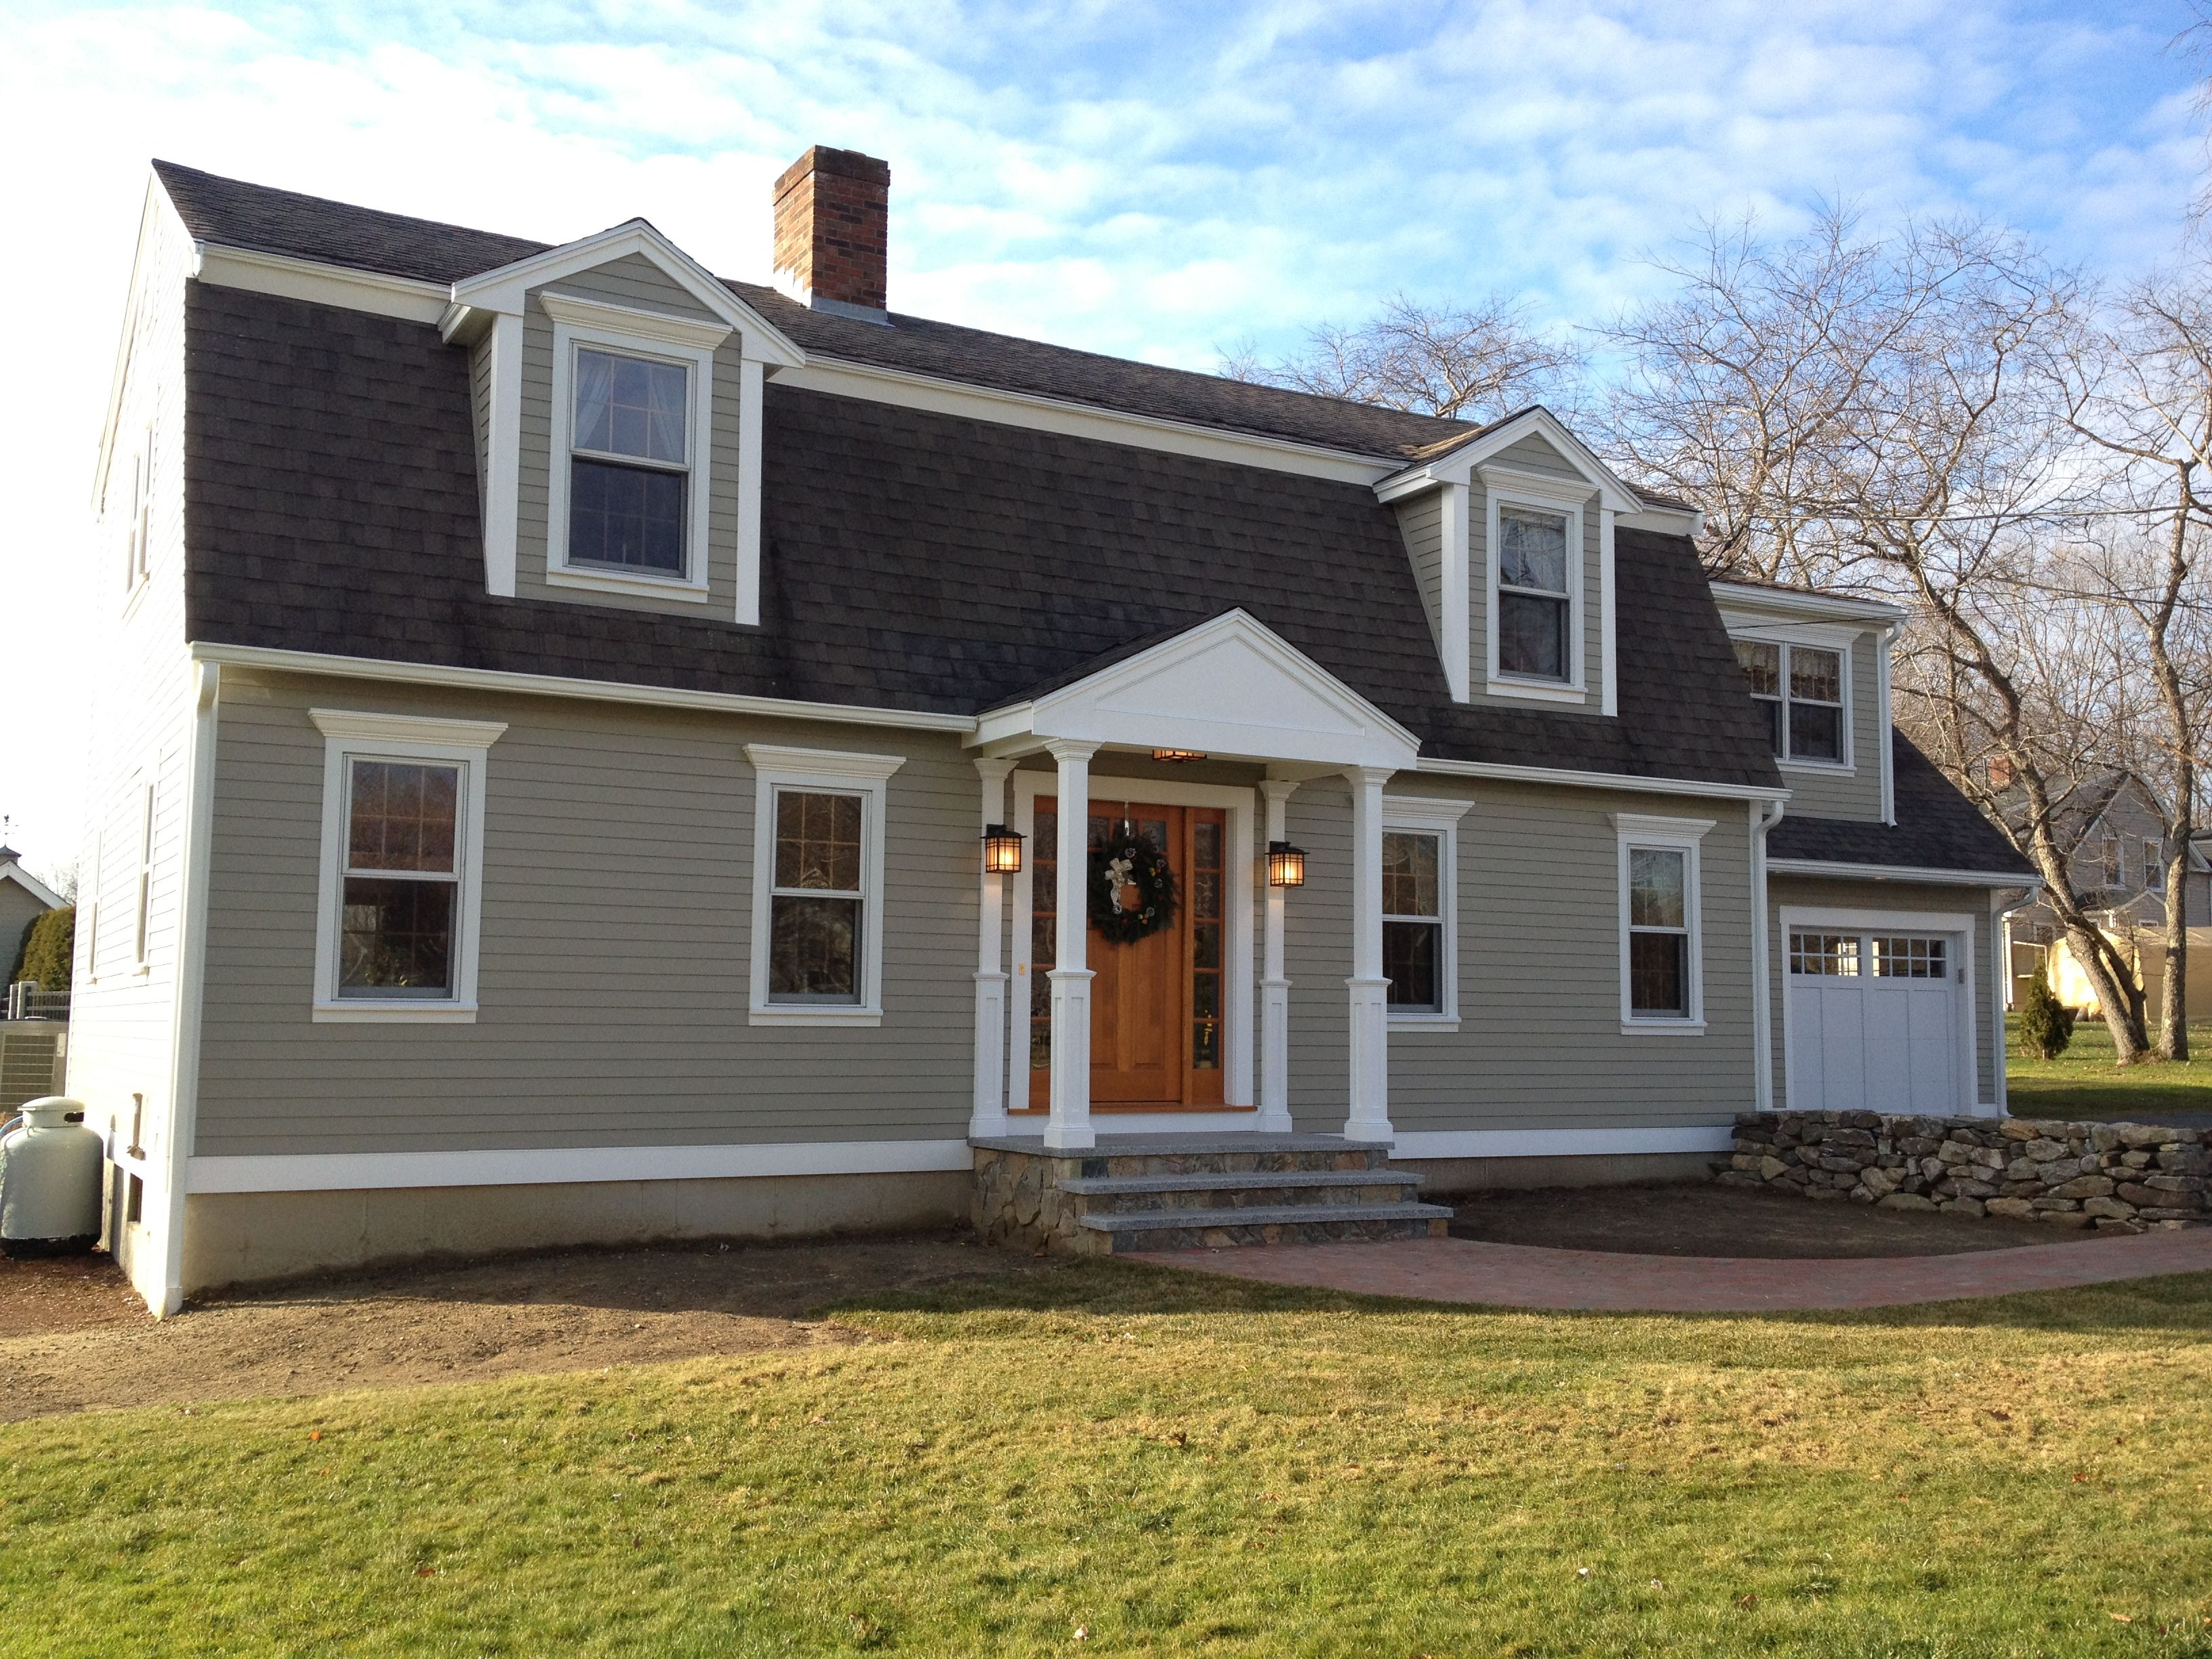 James Hardie Hardieplank Monterey Taupe Color With Custom Portico Gray House Exterior Exterior Gray Paint Exterior Paint Colors For House